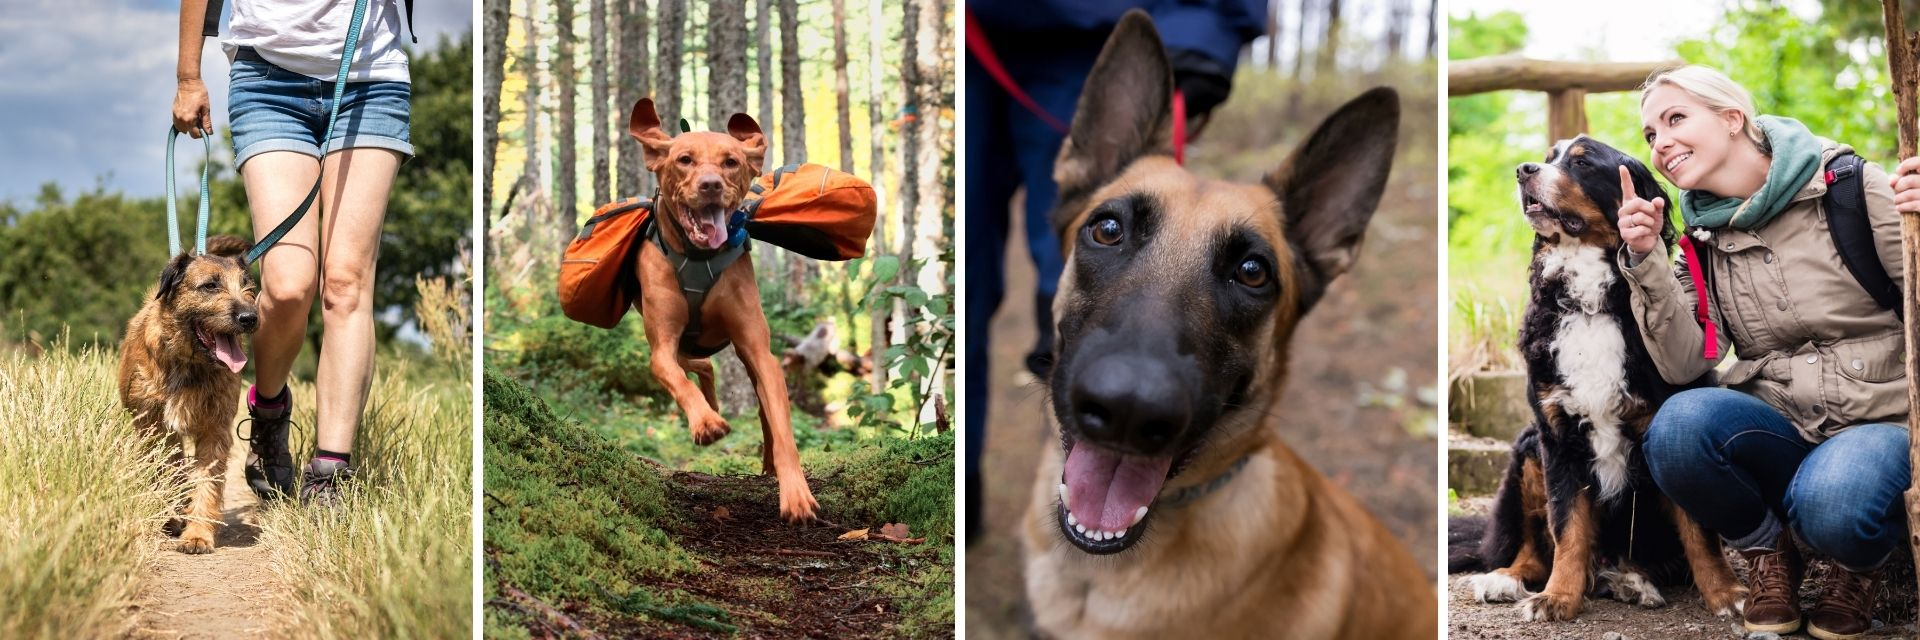 Aldaron dog obedience training and behavior articles